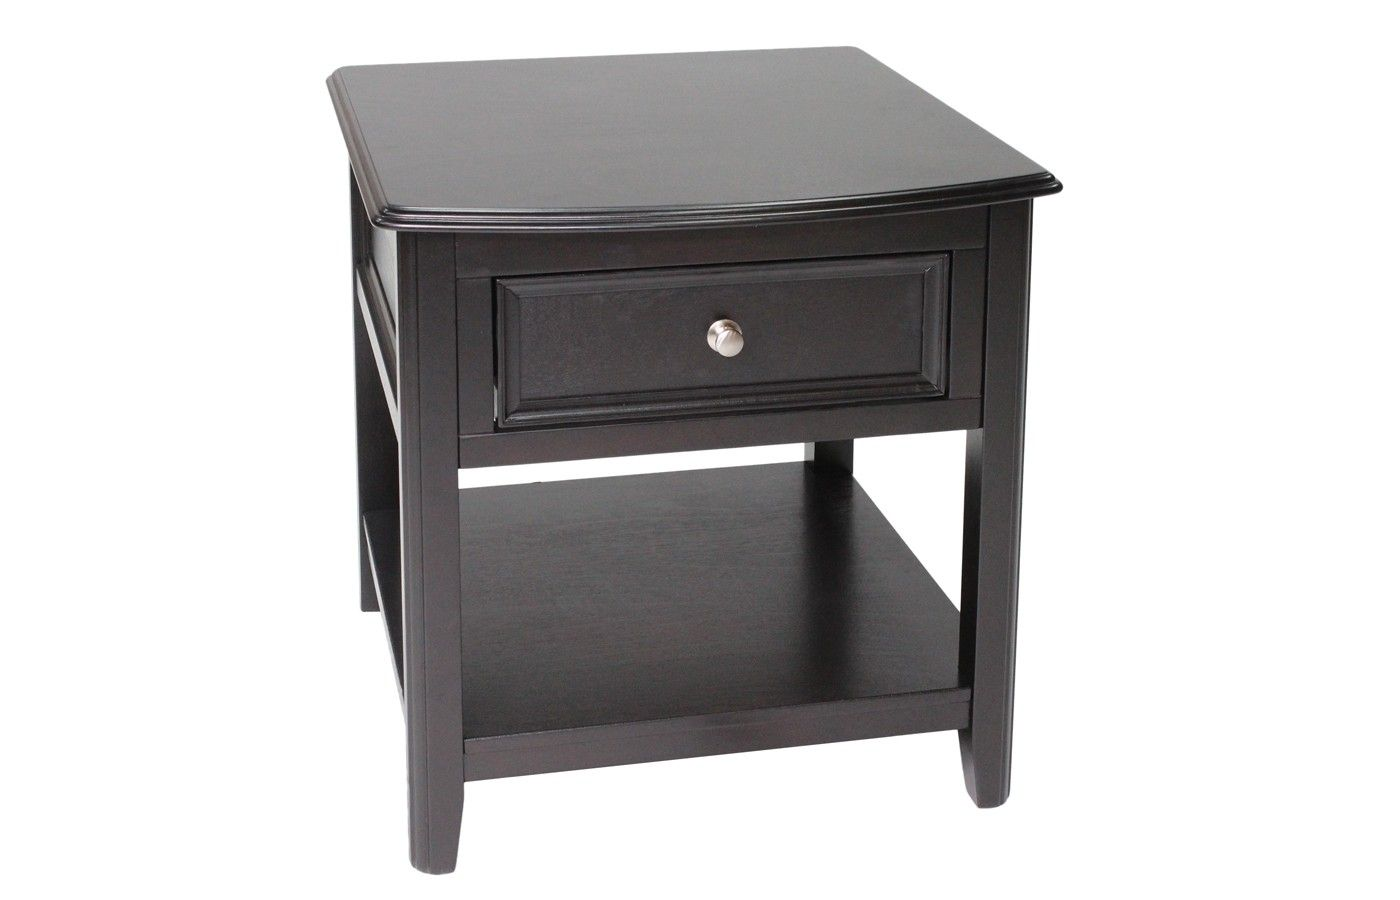 mor furniture for less the carlyle occasional end table tables brown storage coffee discontinued ashley bedroom collections allen sofa white garden deck unfinished wood kitchen